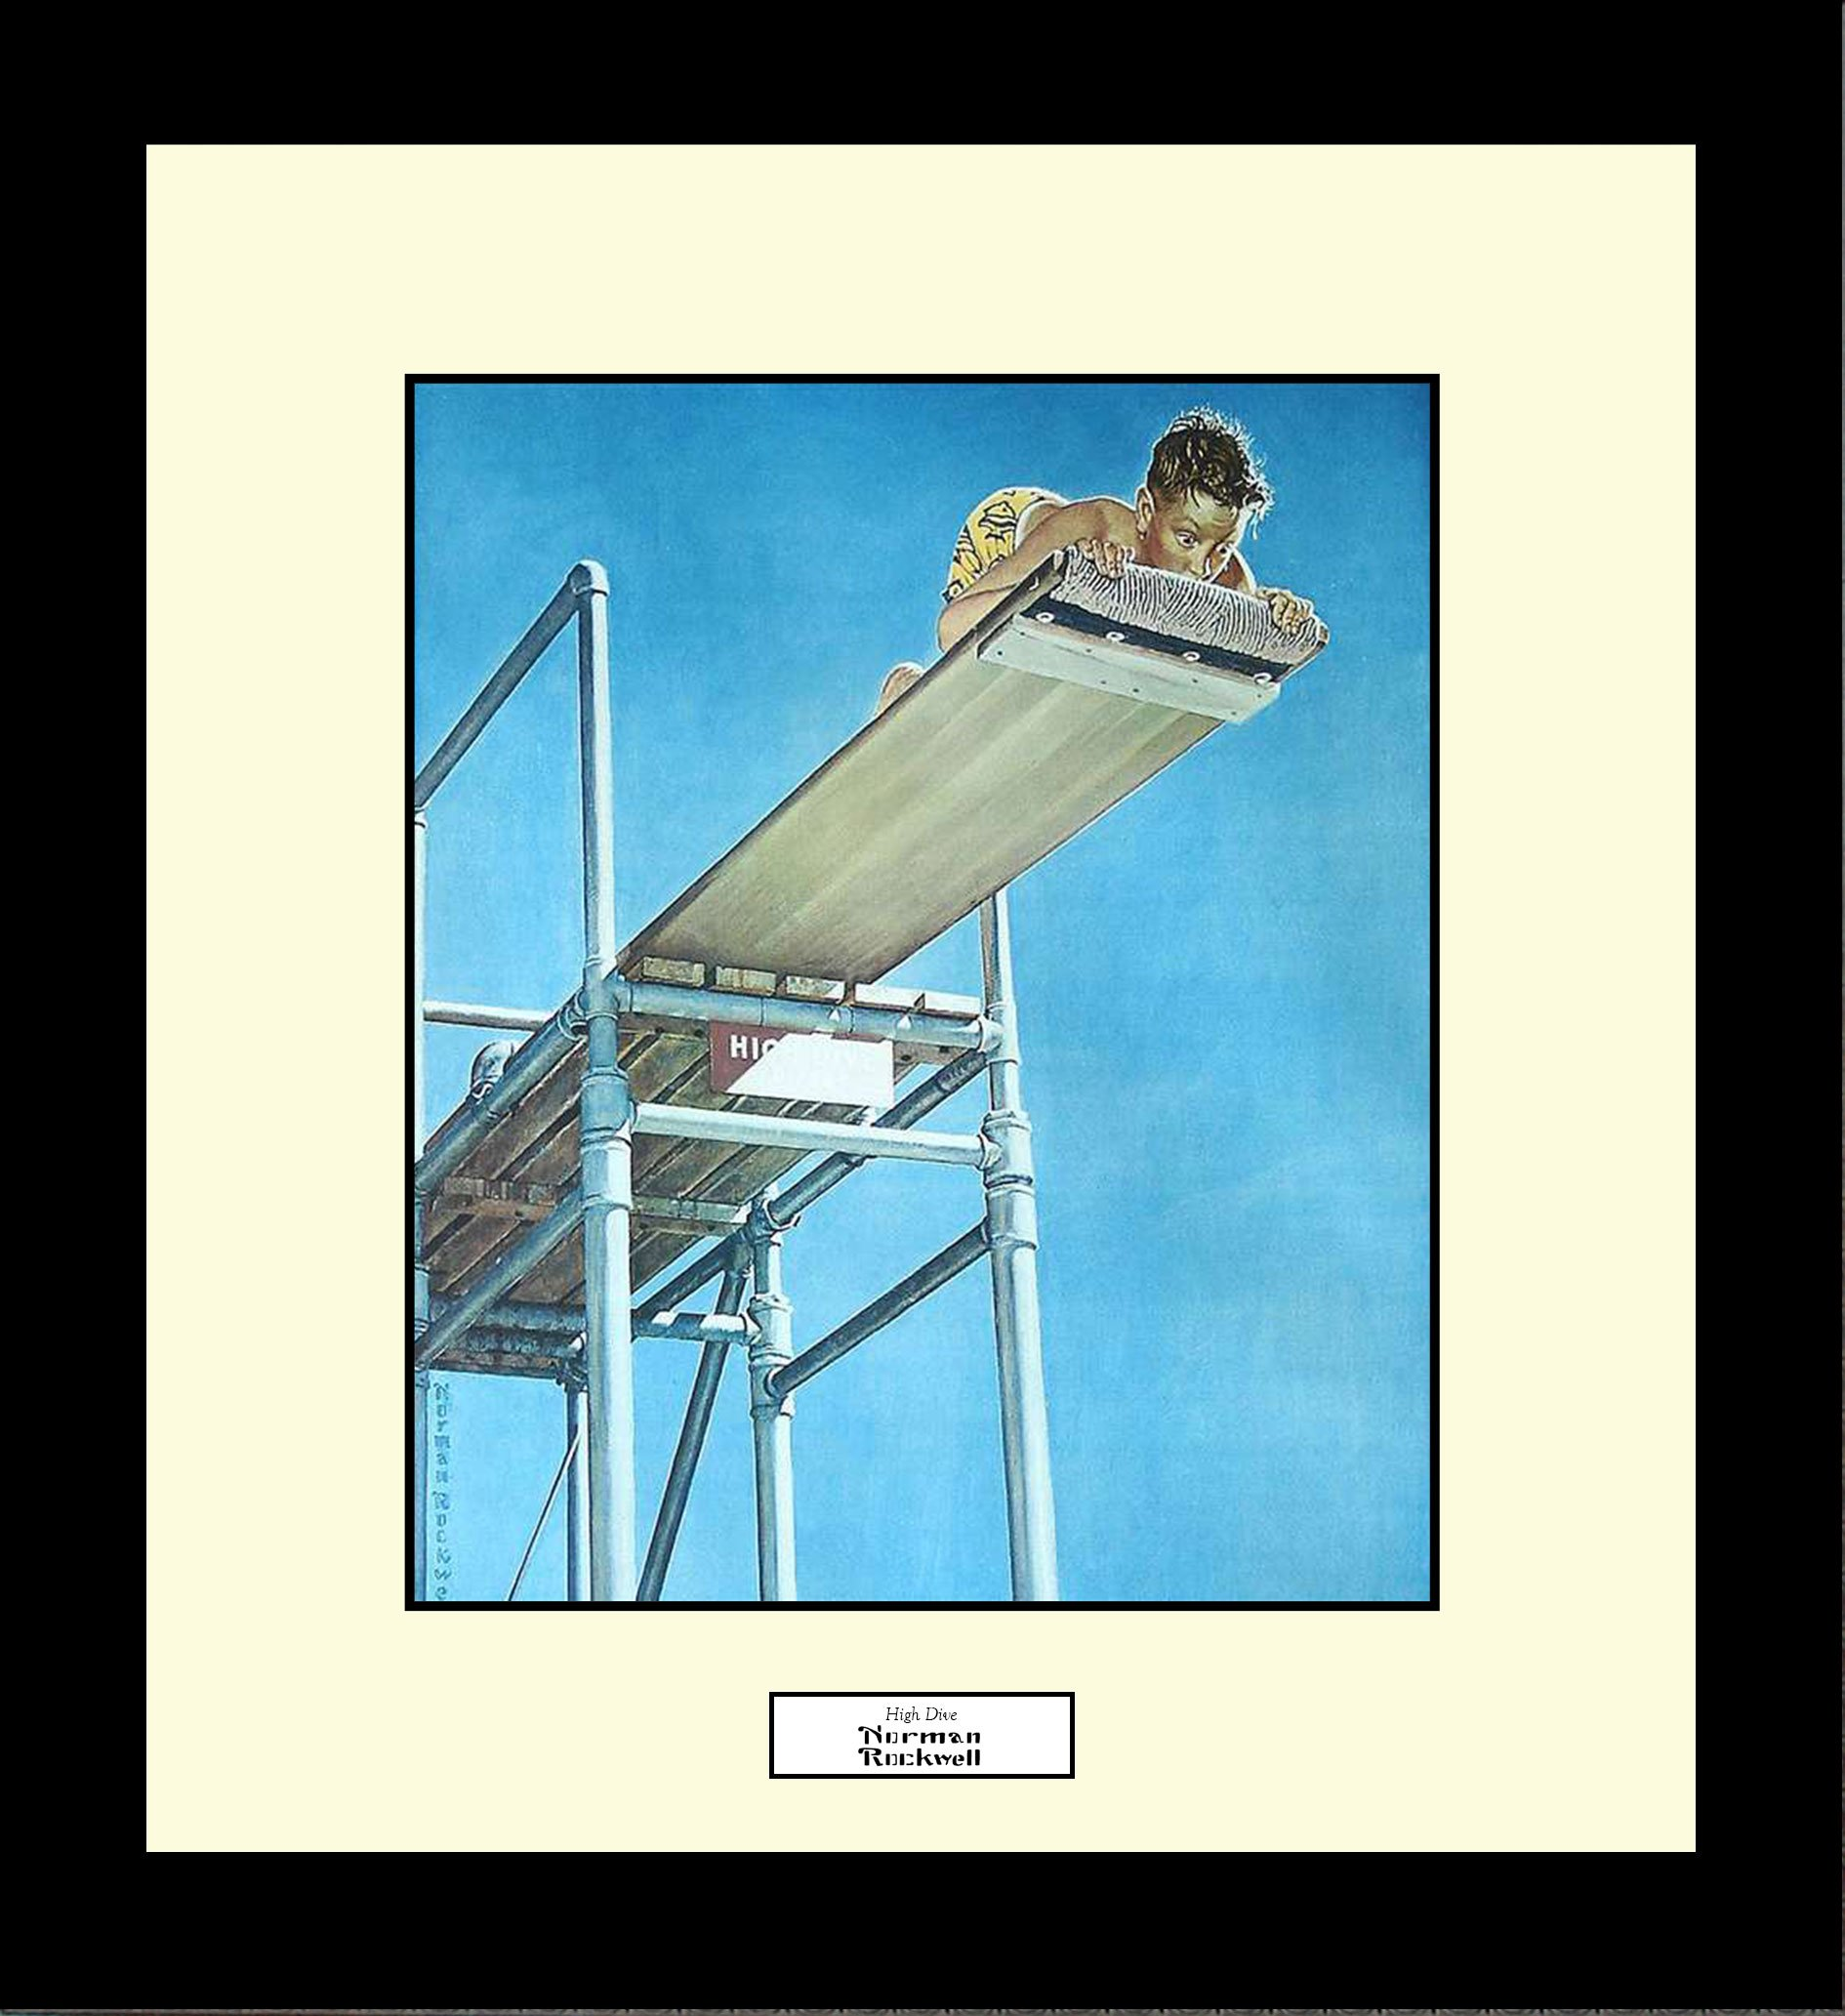 Norman Rockwell HIGH DIVE Framed Boy Swimming Diving Board Wall Hanging Art Gift